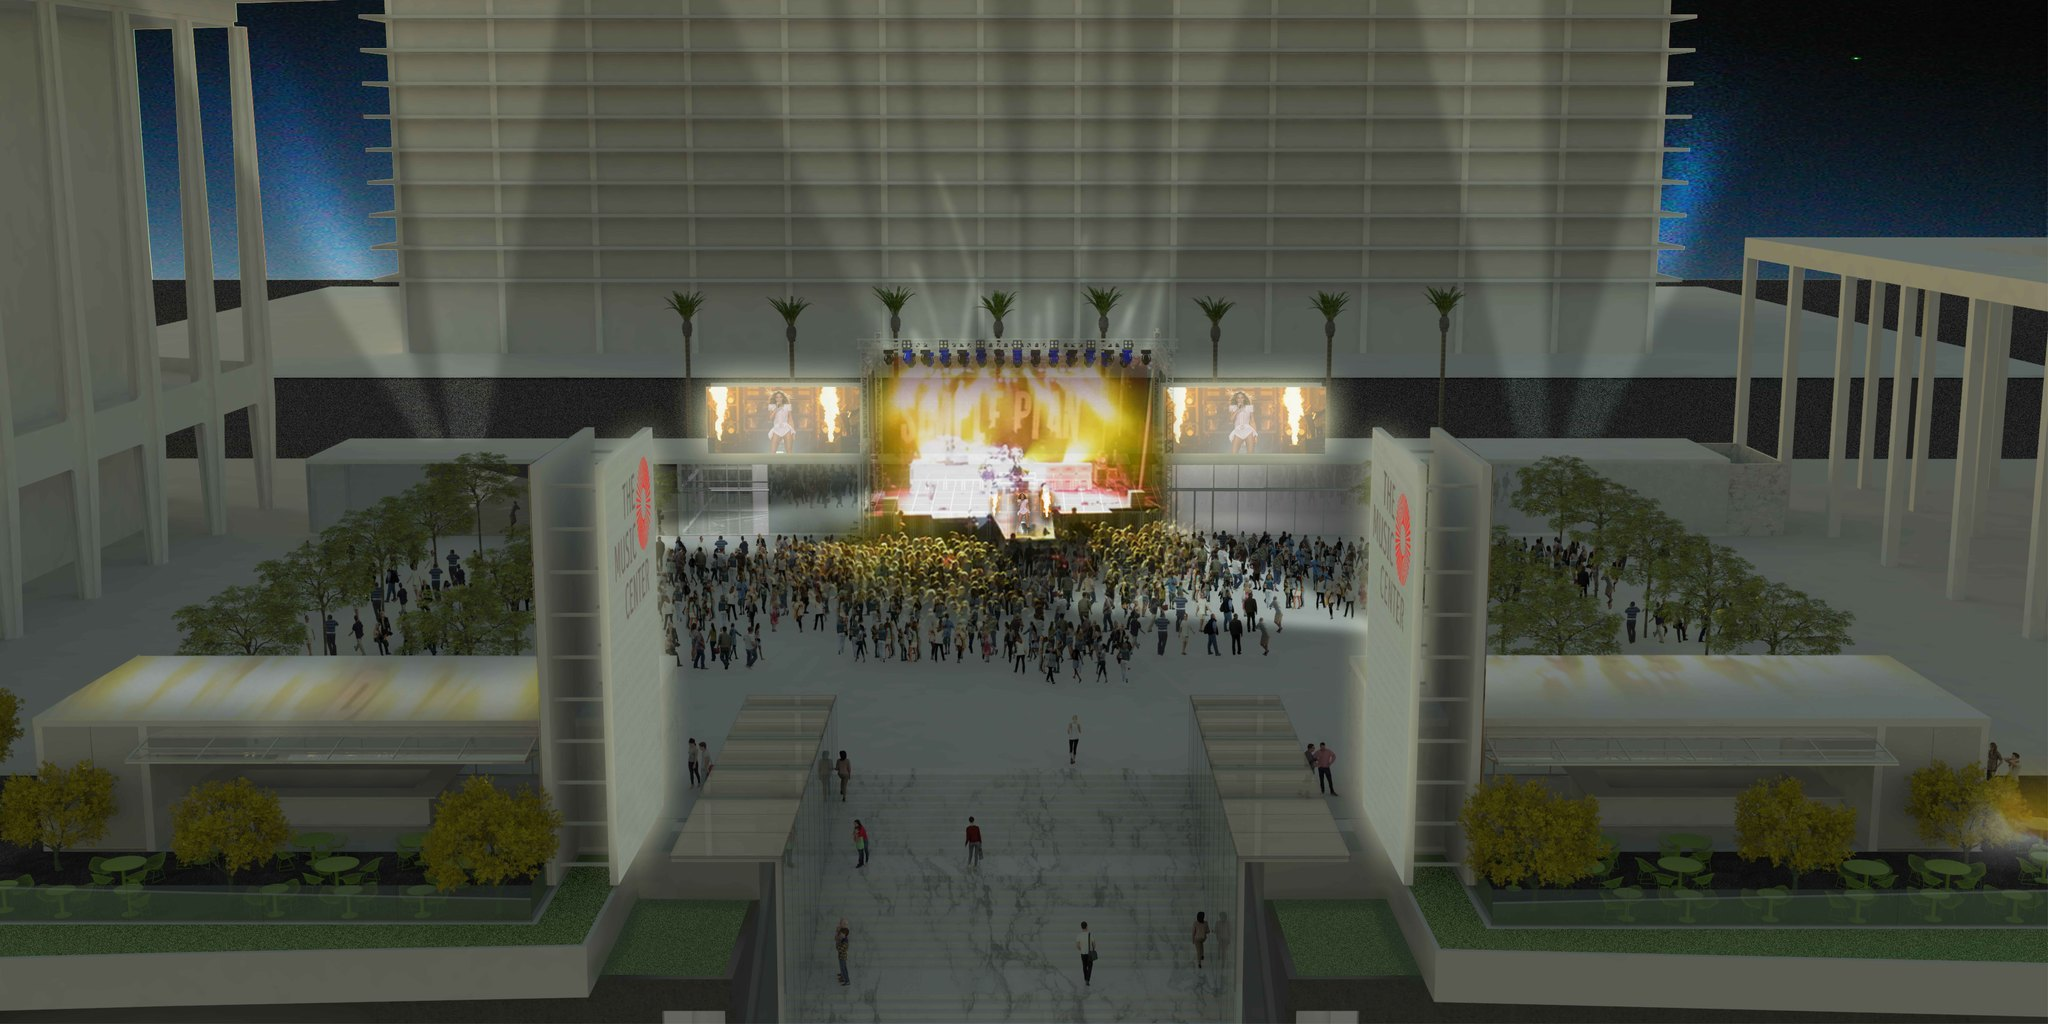 A rendering of the new Music Center plaza at night.